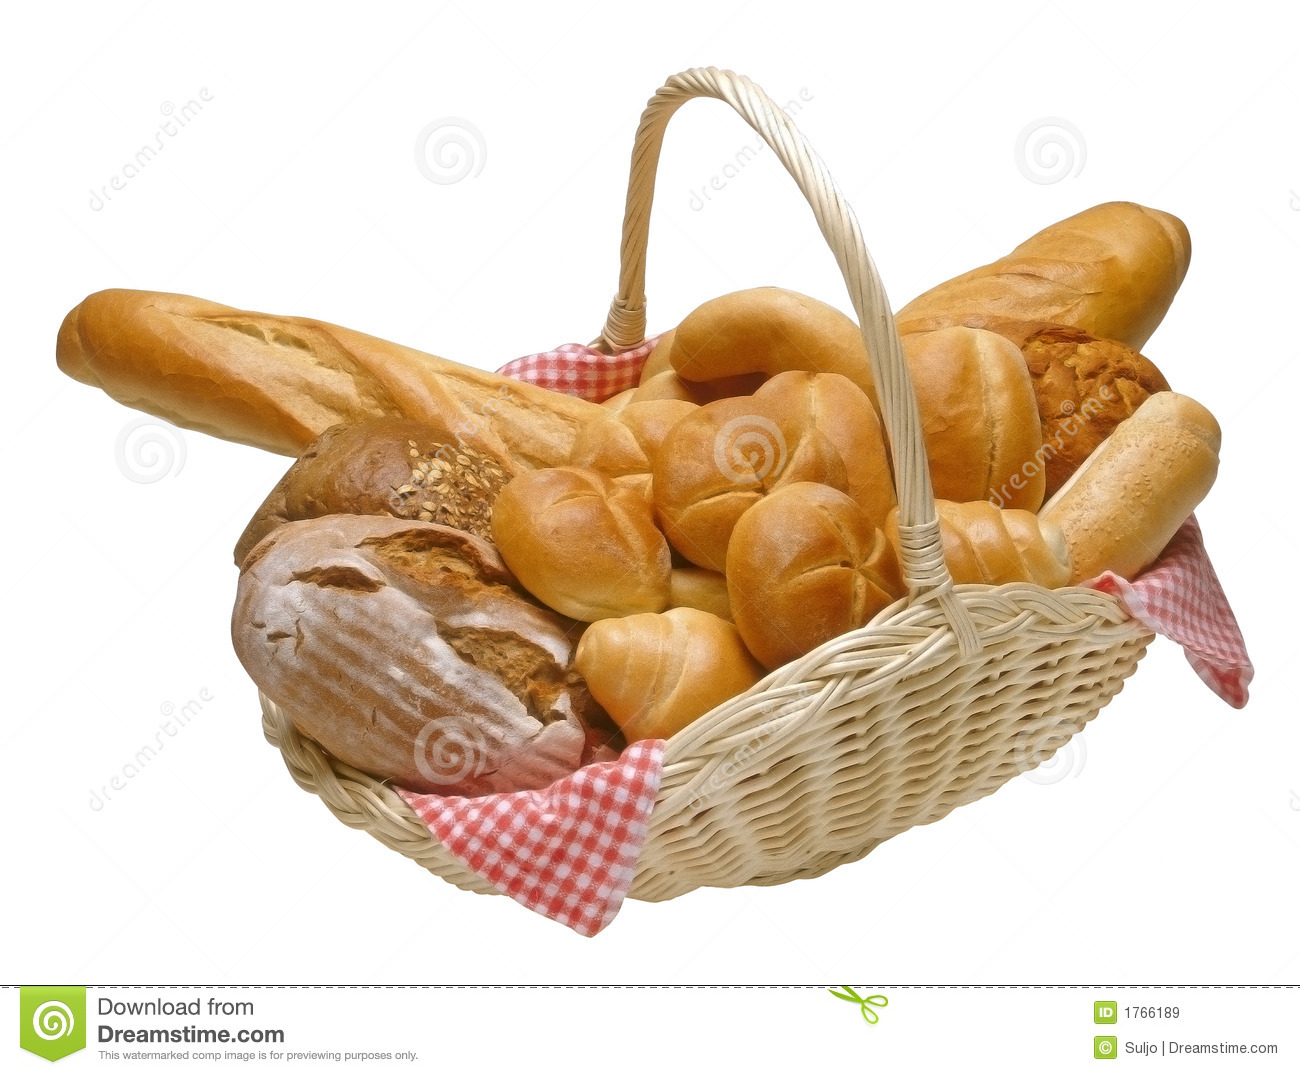 Breads And Rolls In A Wicker Basket Isolated With Clipping Path